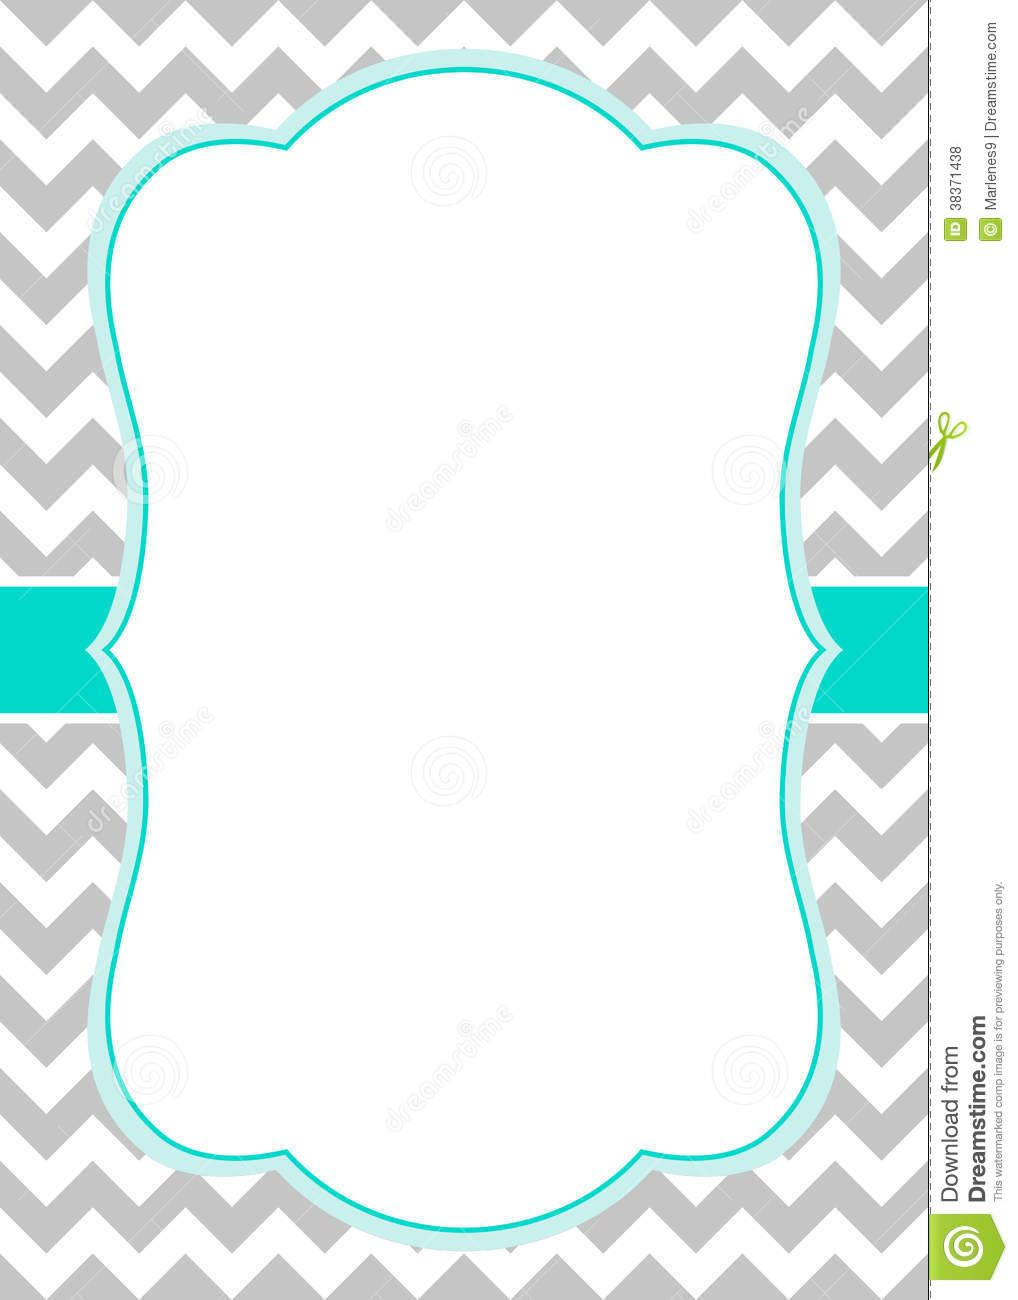 Free Chevron Border Templateadmin Admin  Baby Shower Ideas